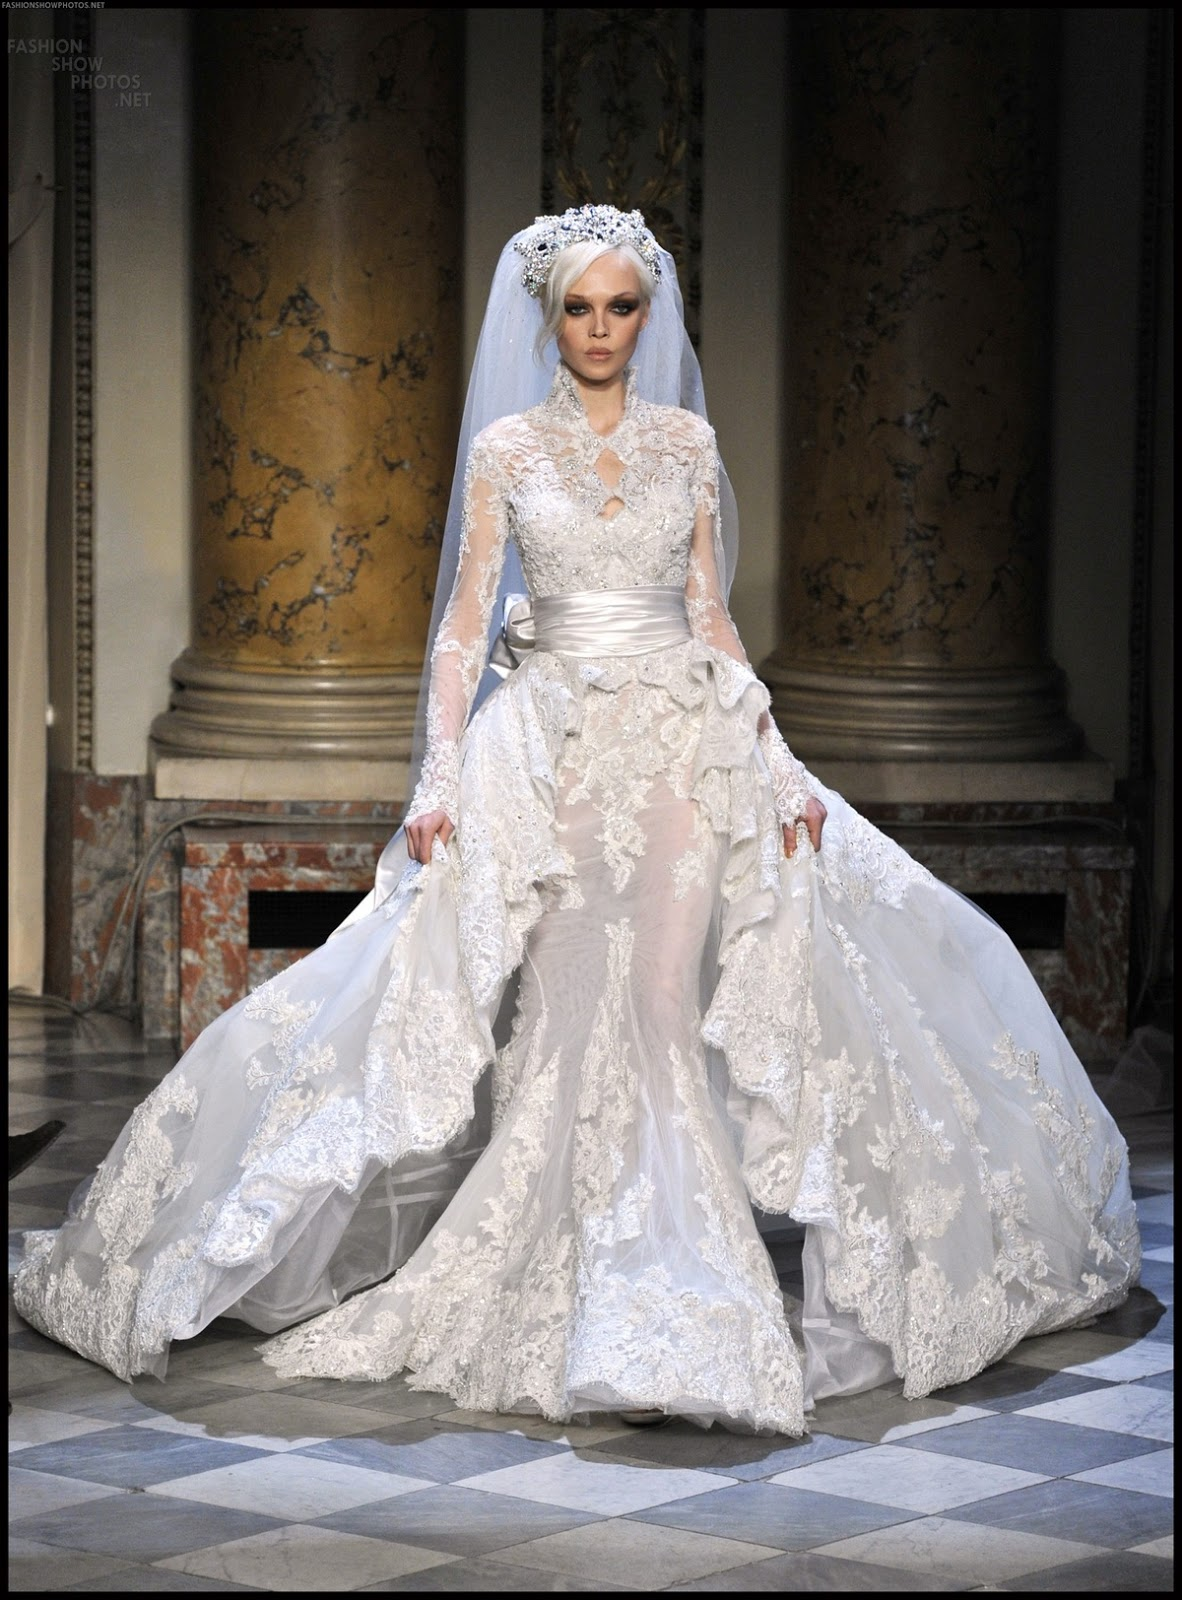 Love a fitted dress and long lace veil | Wedding dresses ... |Beautiful Wedding Gowns With Veils